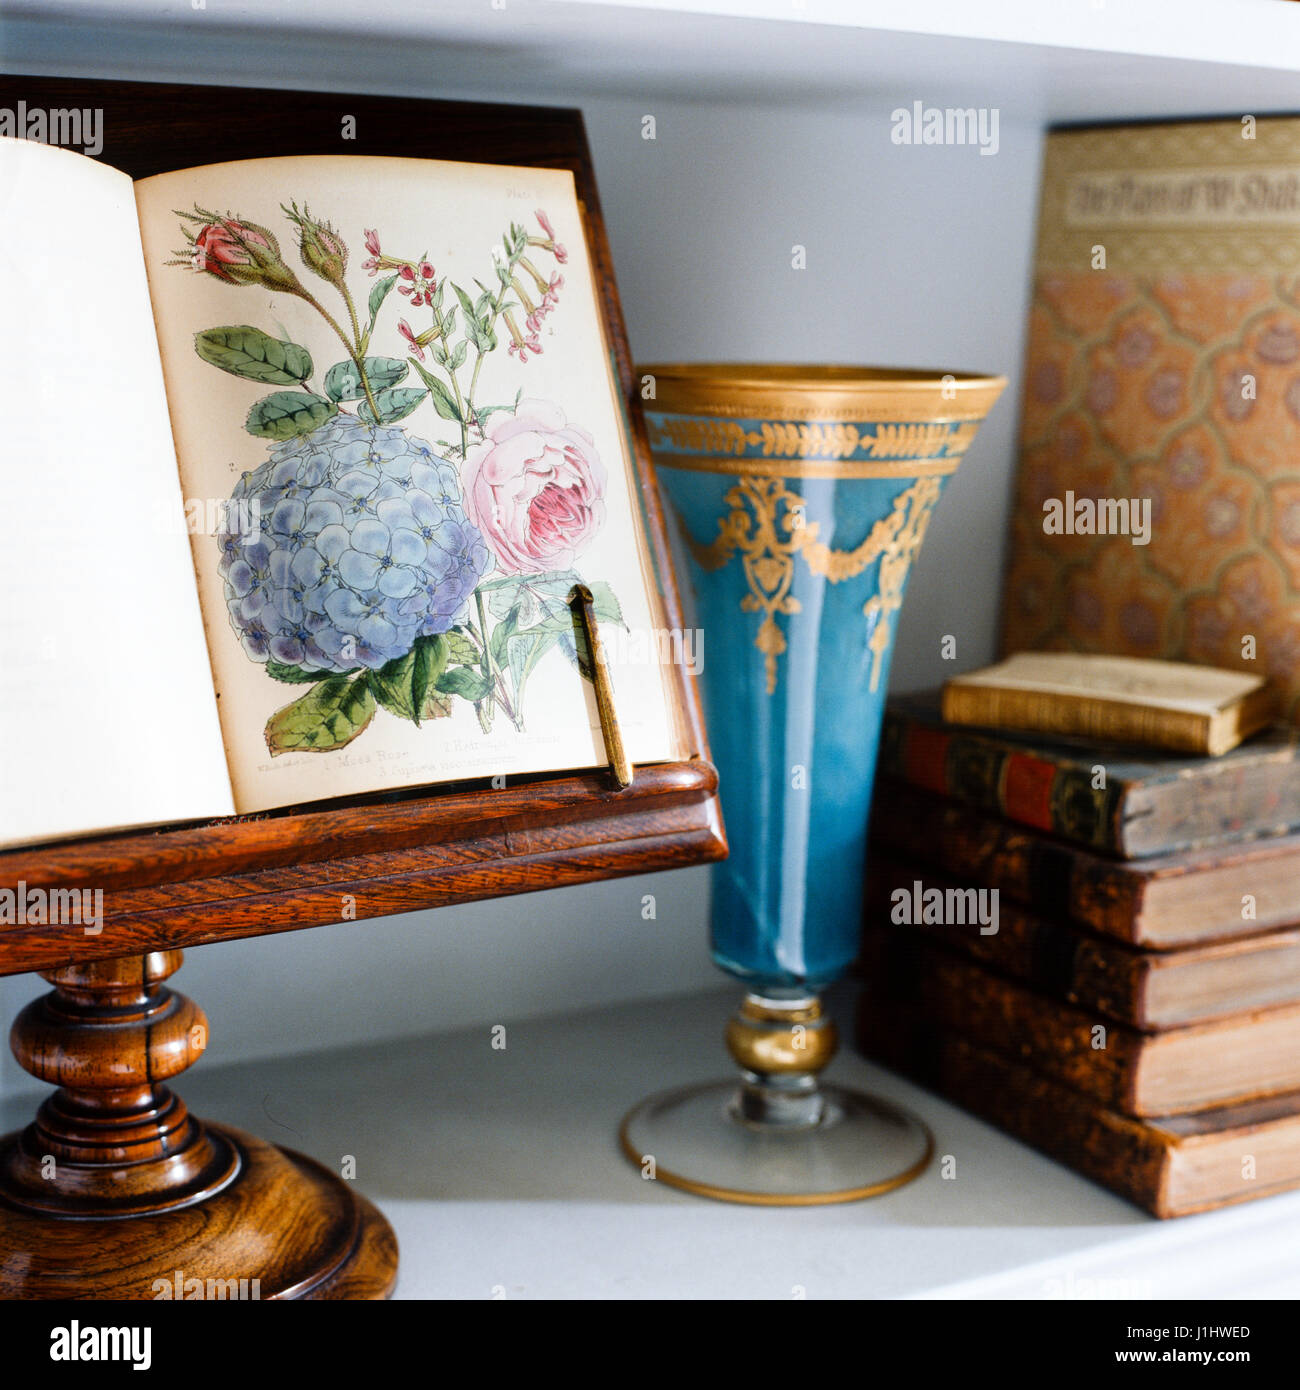 Book with flower illustration on stand. - Stock Image